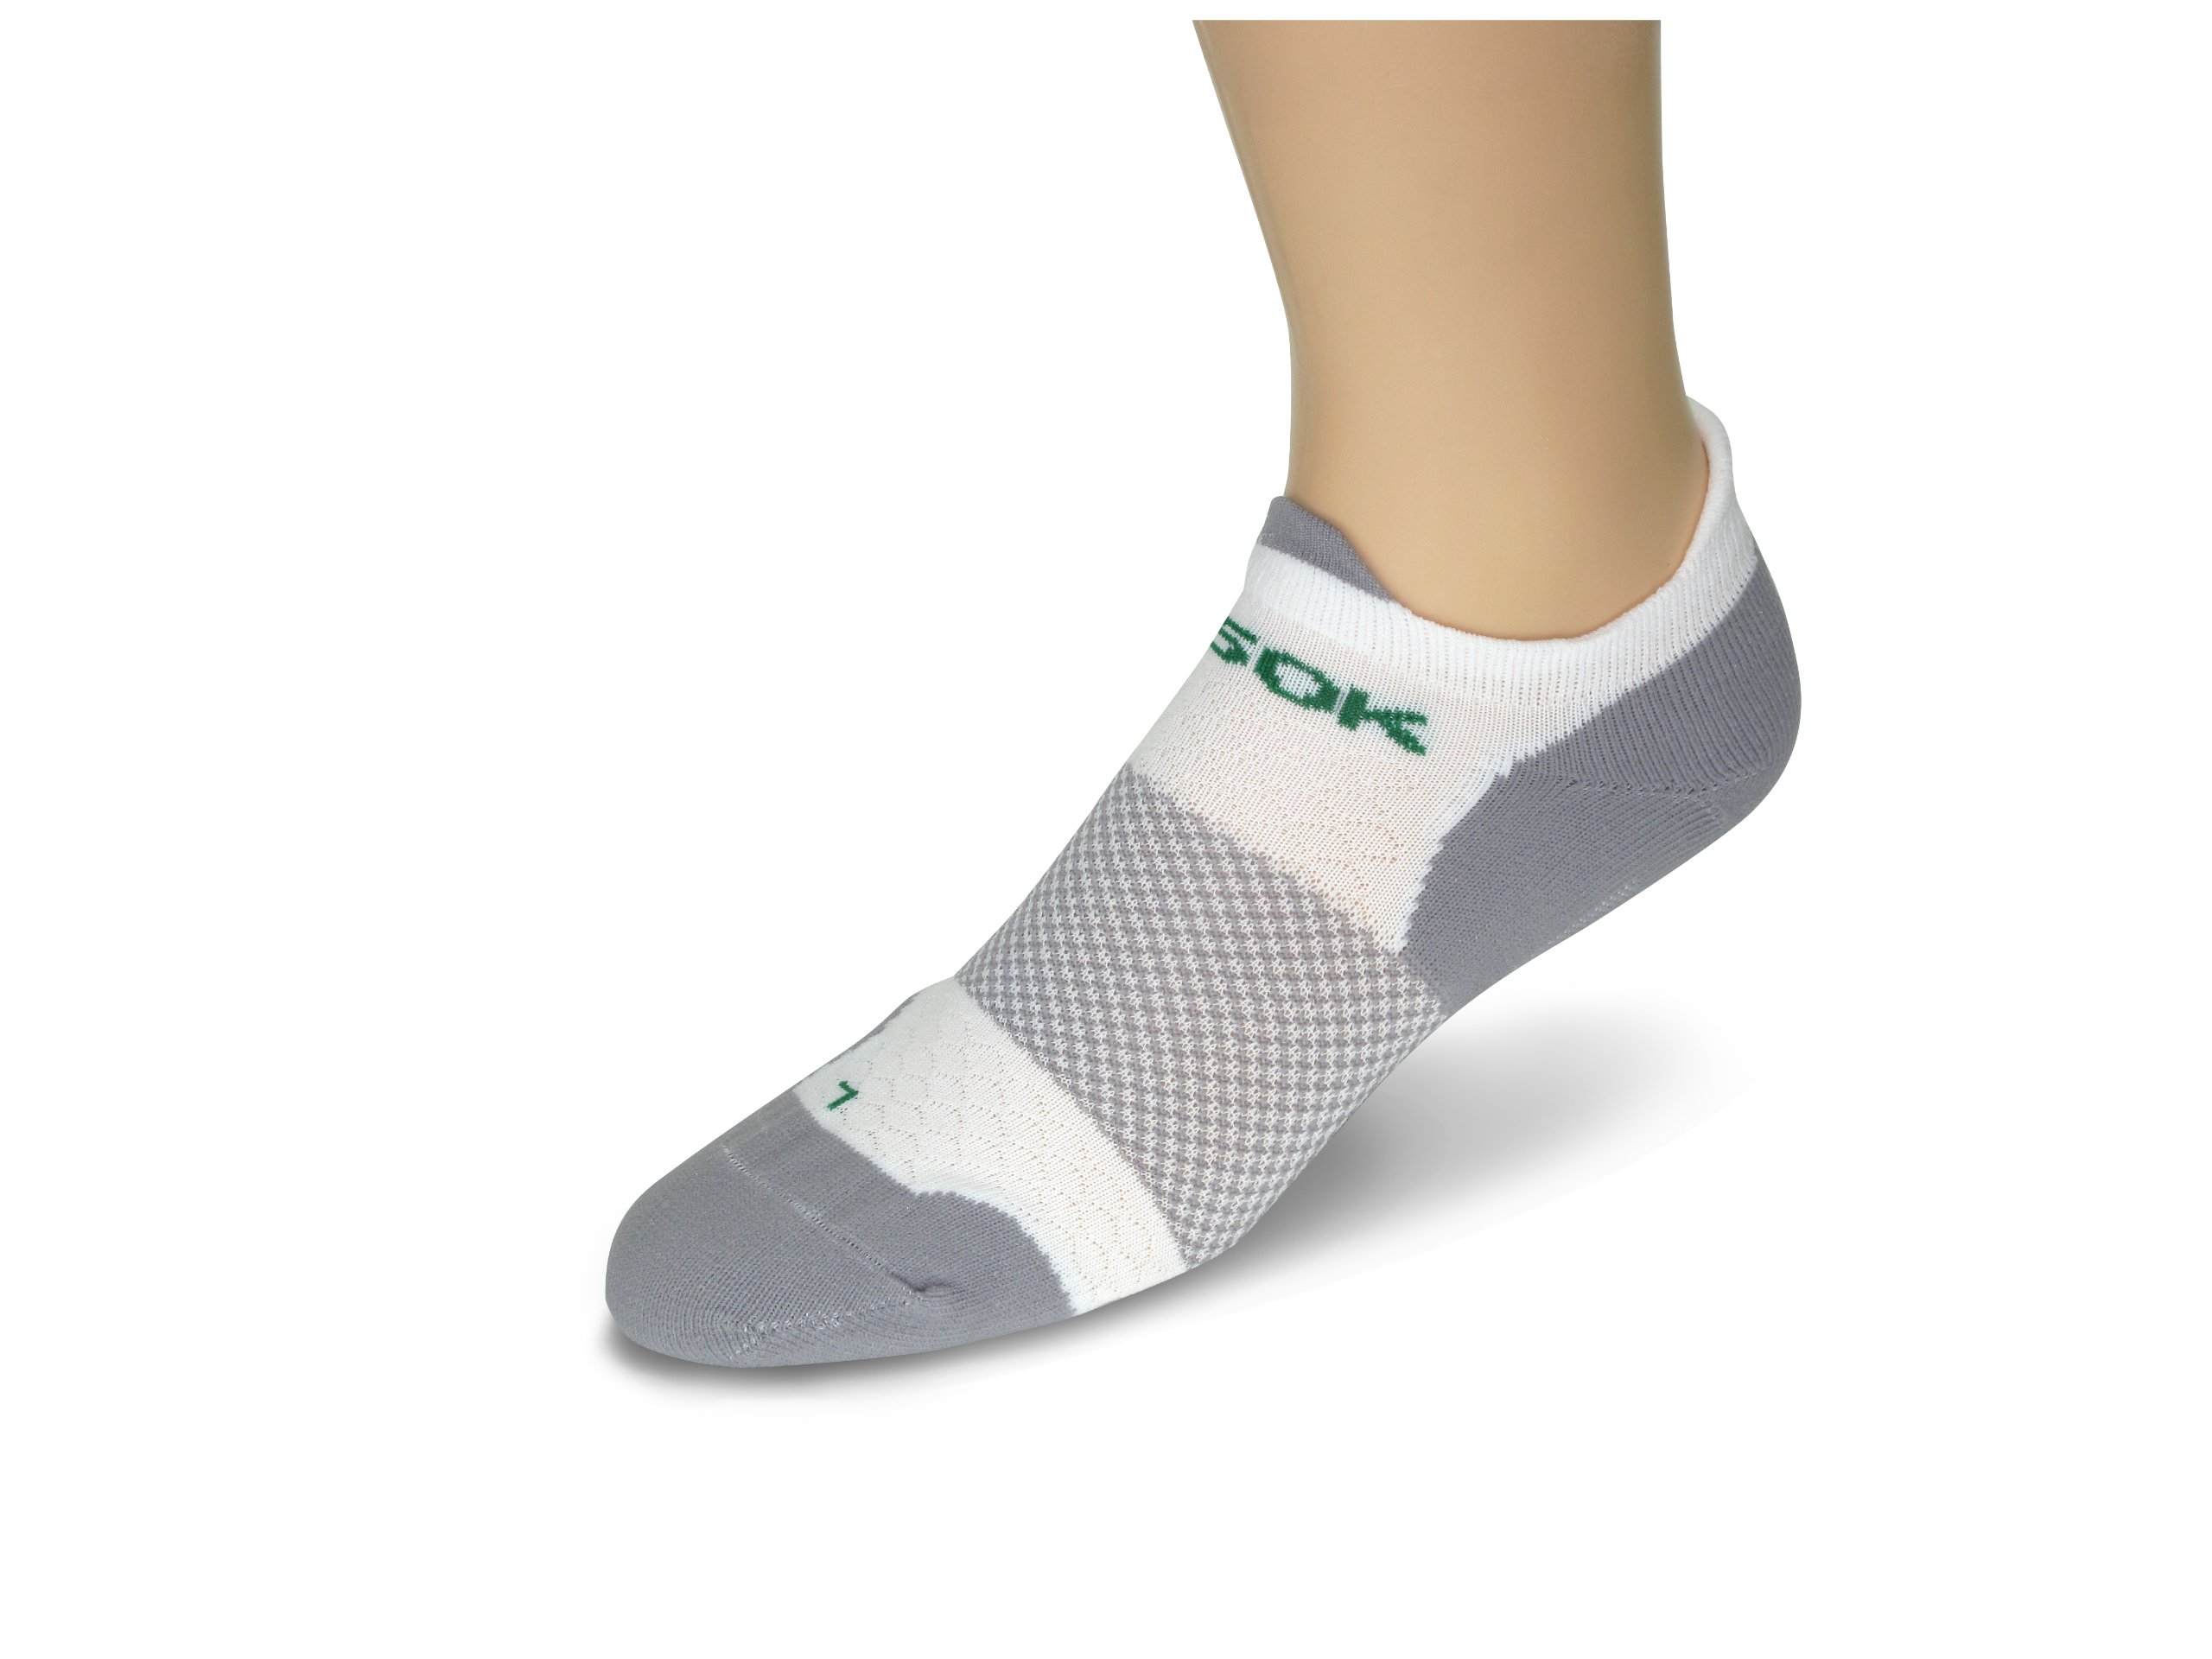 Fitsok F4 No Show Sock, 3-Pack (White, Large) by Fitsok